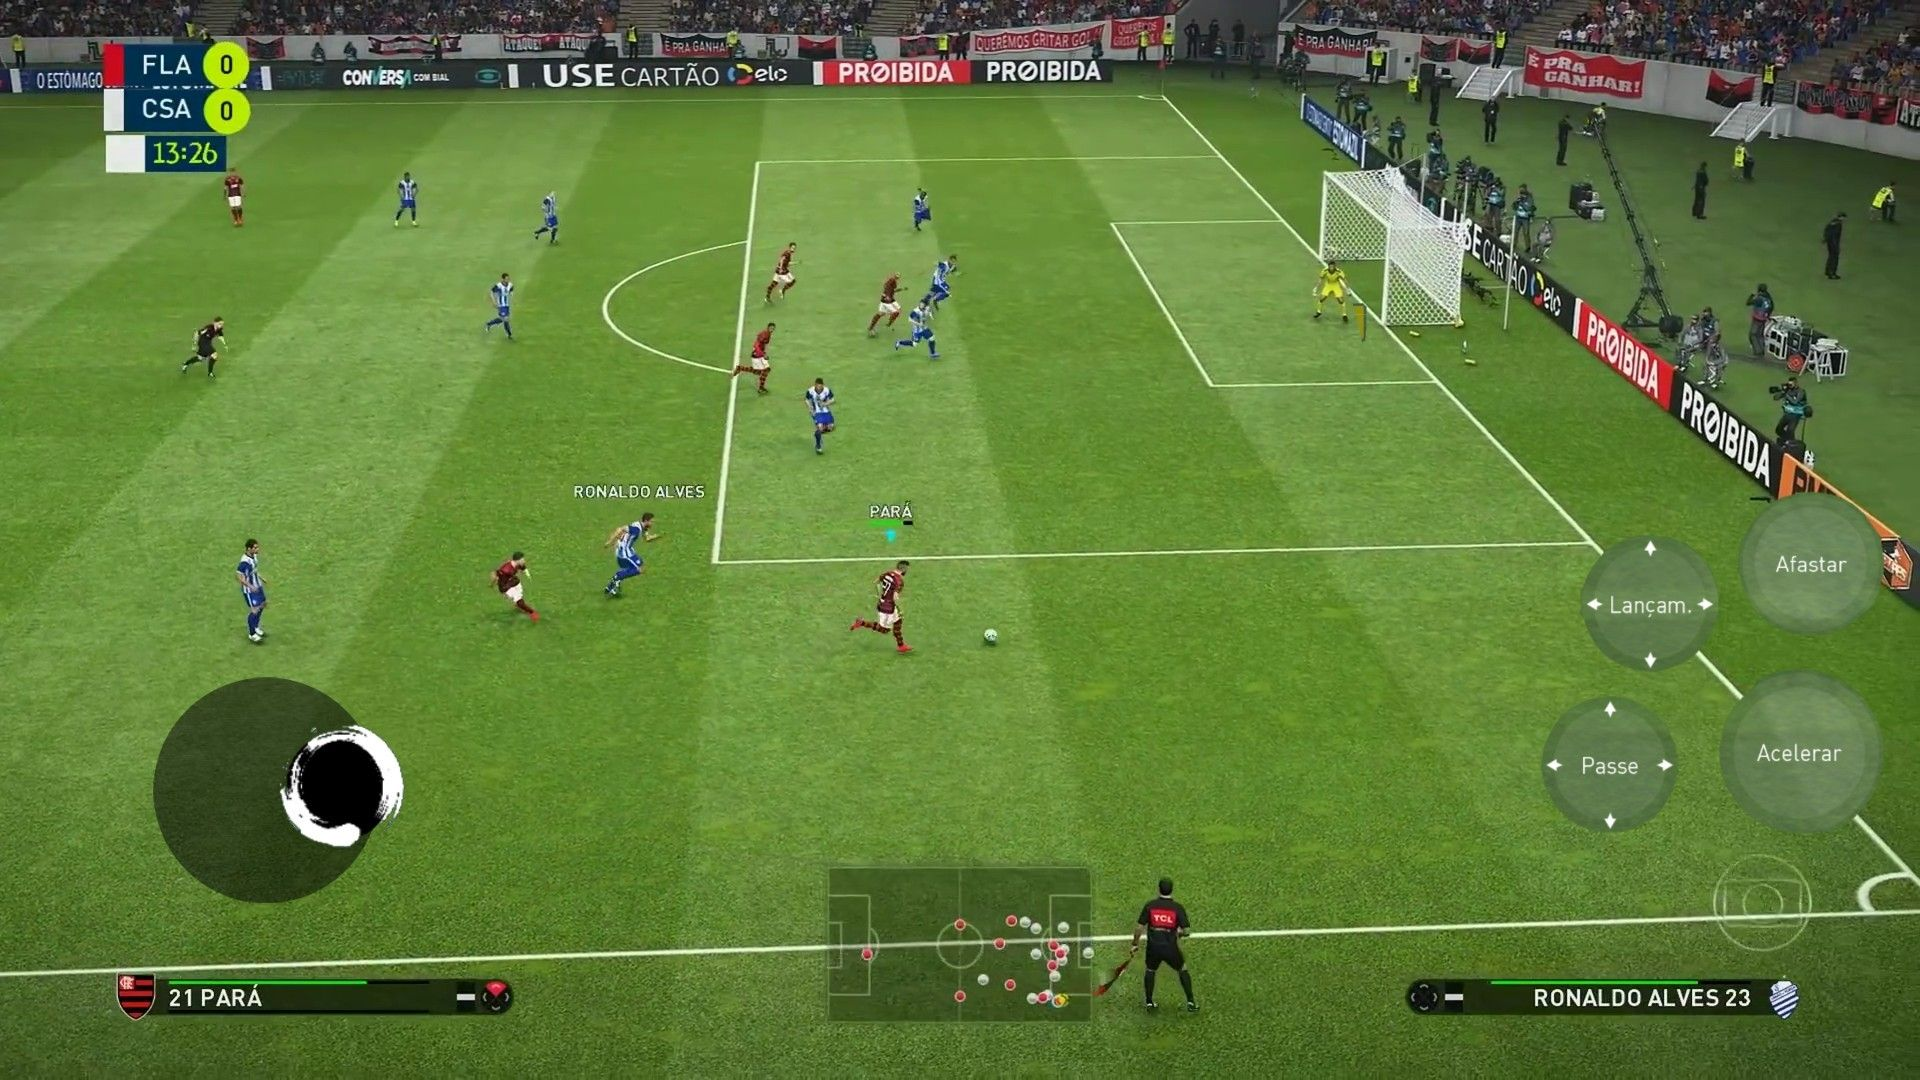 Download pes 2020, pes mobile in 2019 | Android apps